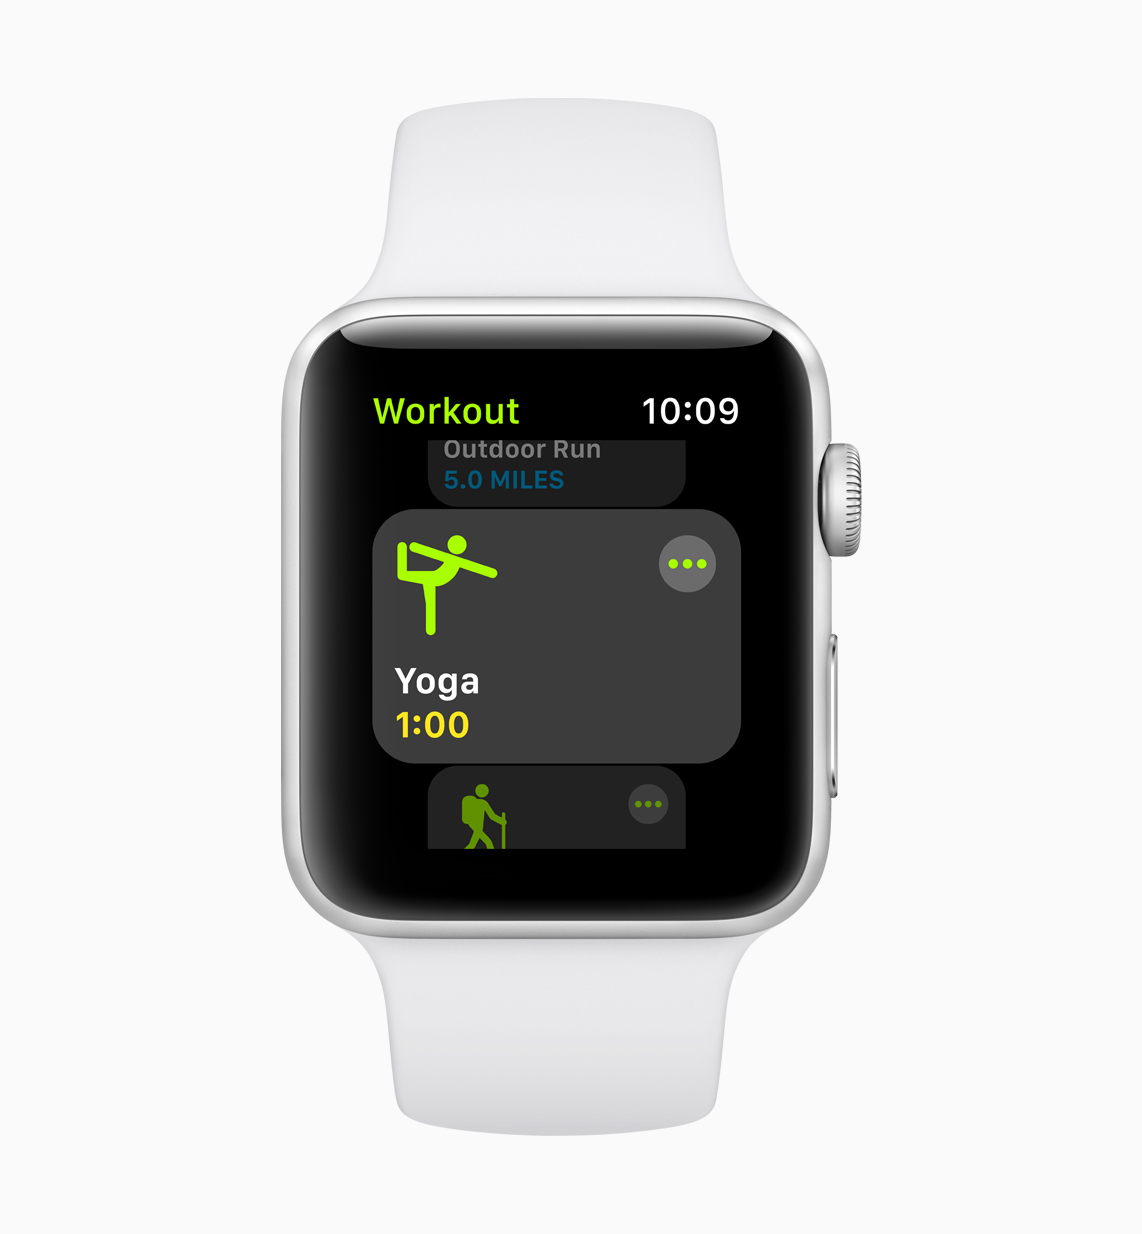 Yoga on Apple Watch